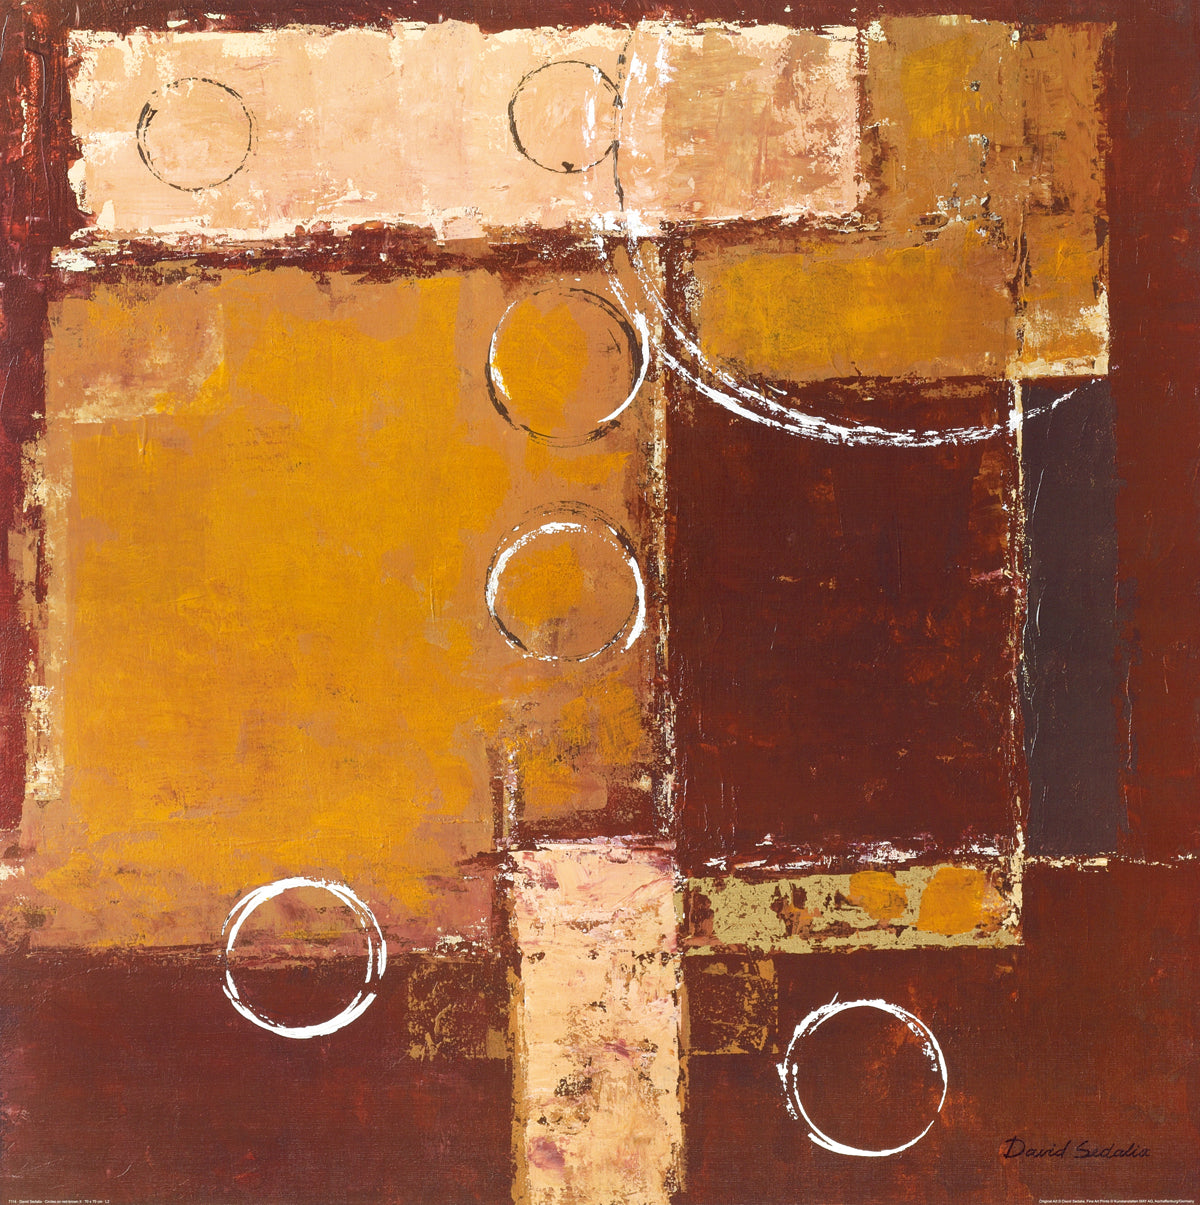 David Sedalia - Circles on red-brown II